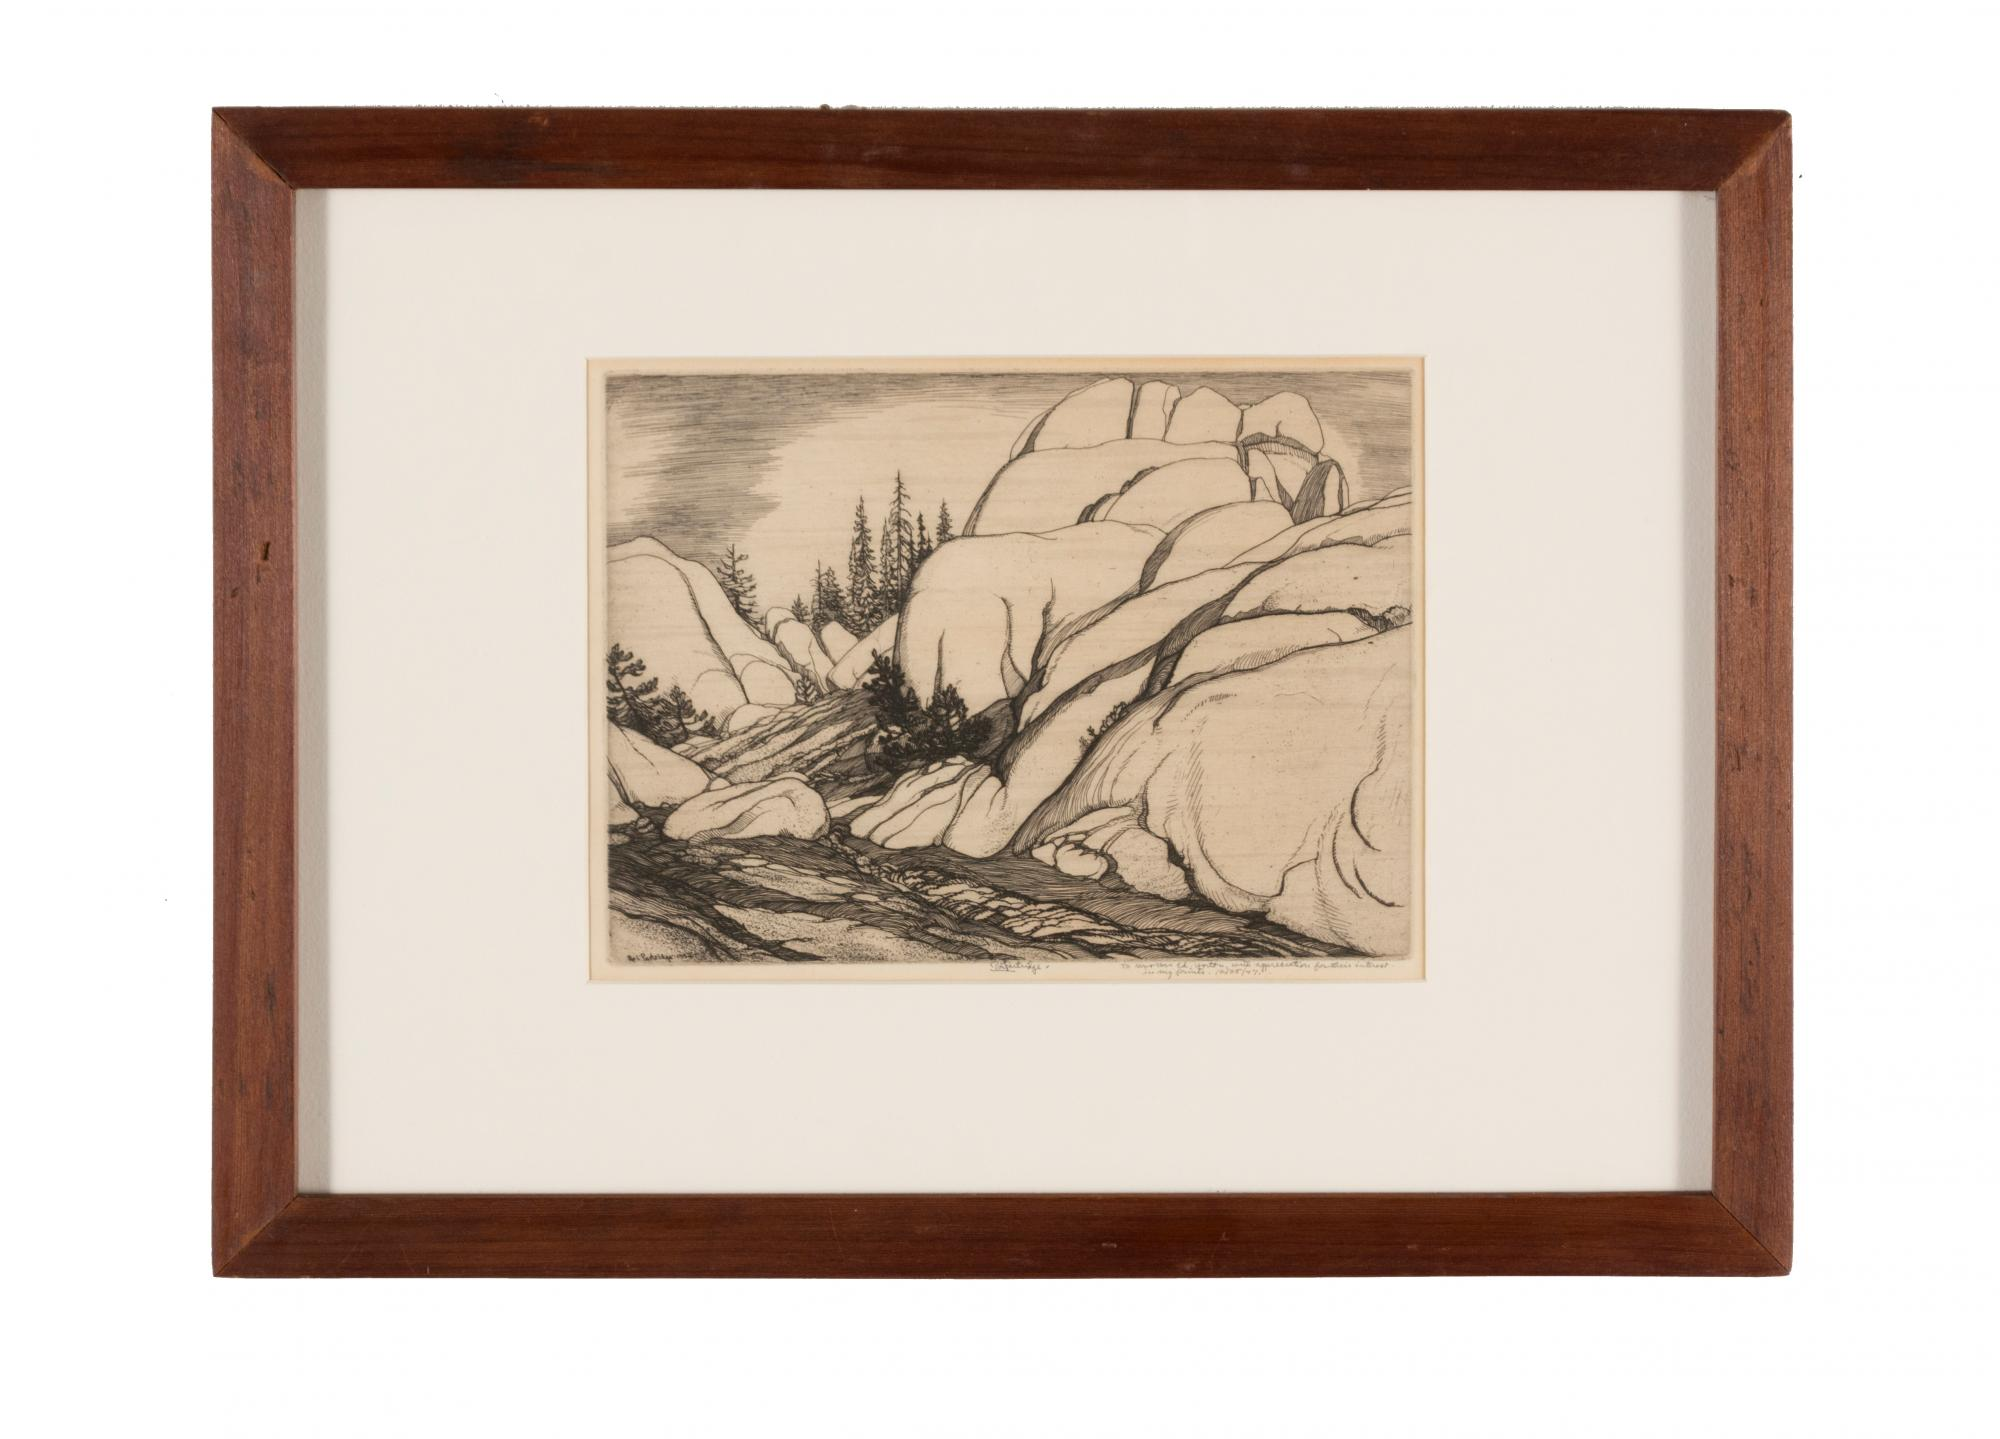 Roi Partridge (1888–1984) United States, Granite at White Wolf, 1932, Etching on copper, Gift of the Edward and Claudine Horton Family [98.9.4]